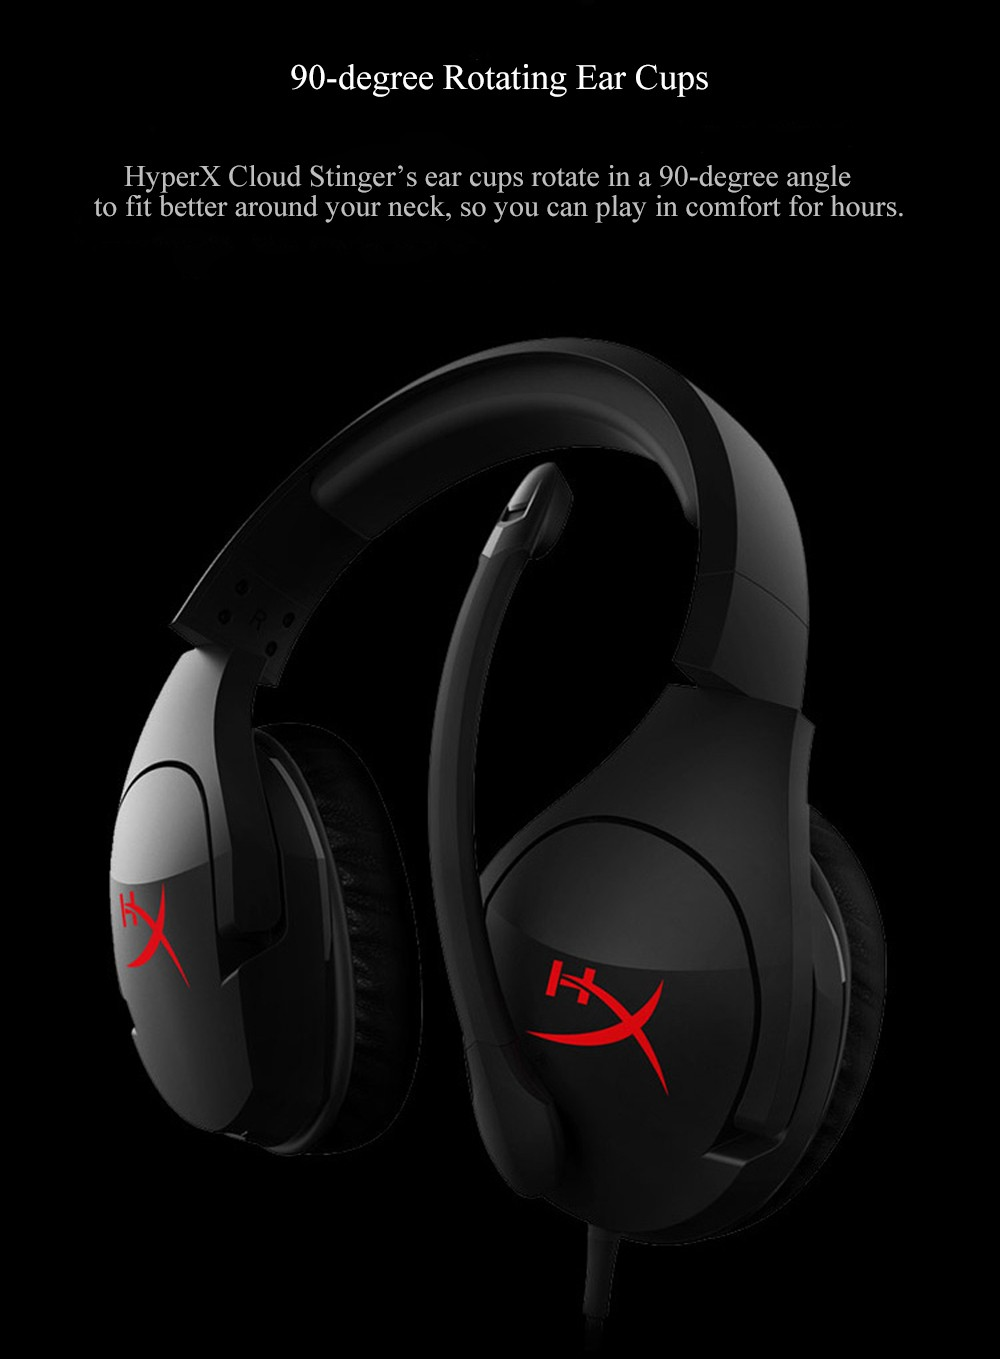 Kingston HyperX Cloud Stinger Auriculares Mic Headphone Steelseries Gaming Headset with Microphone For PC PS4 Xbox Mobile 34